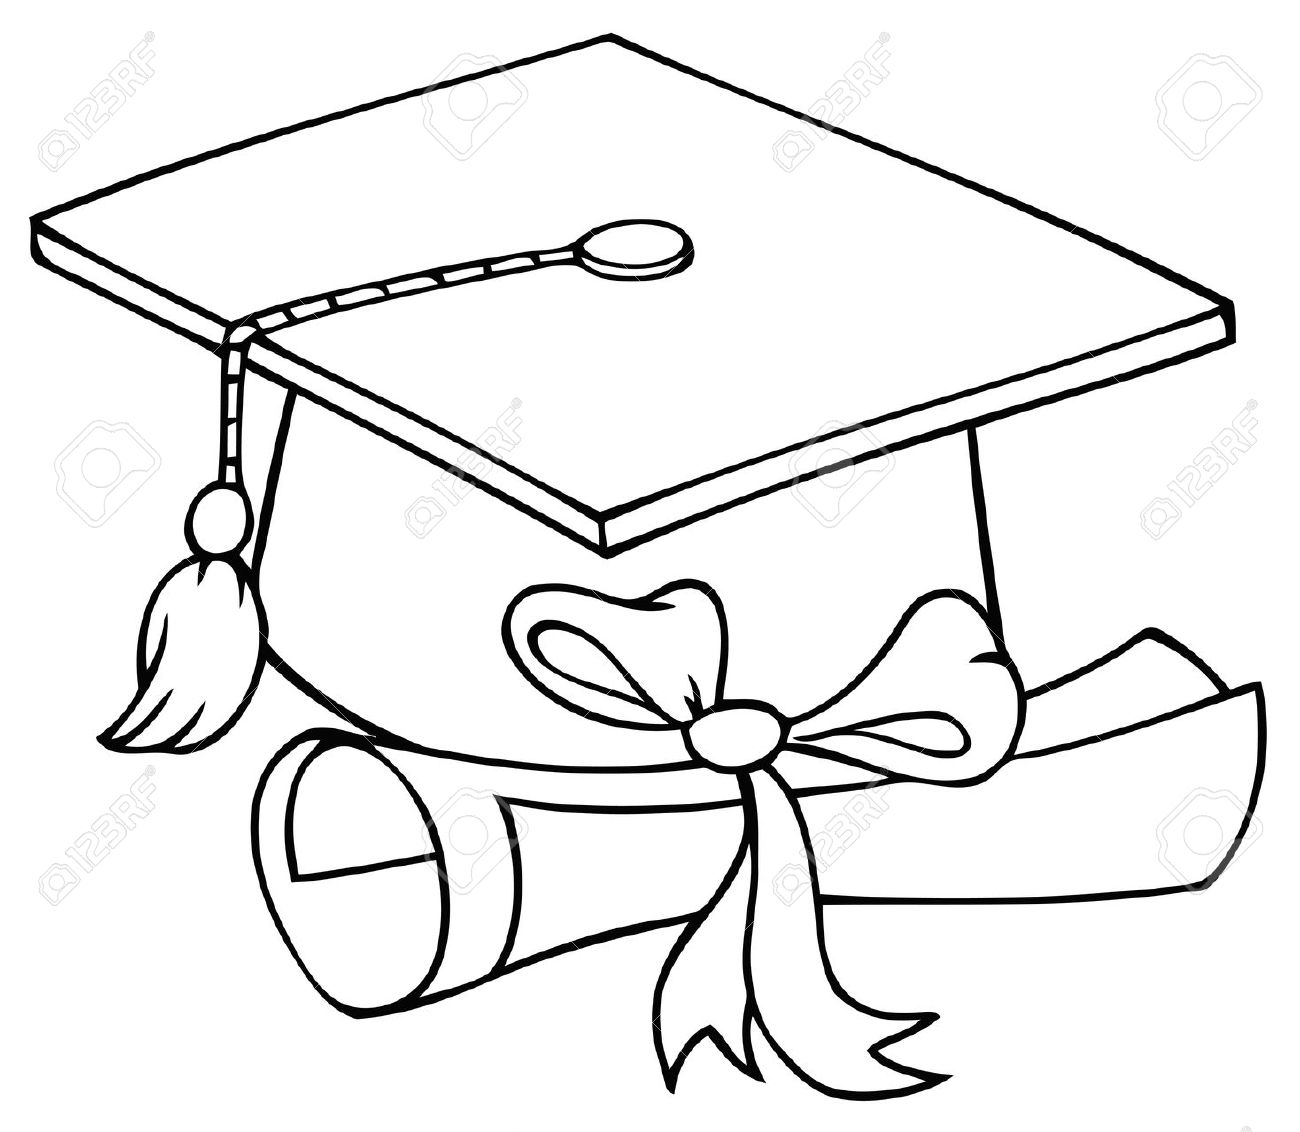 Free Diploma Clipart Black And White, Download Free Clip Art.